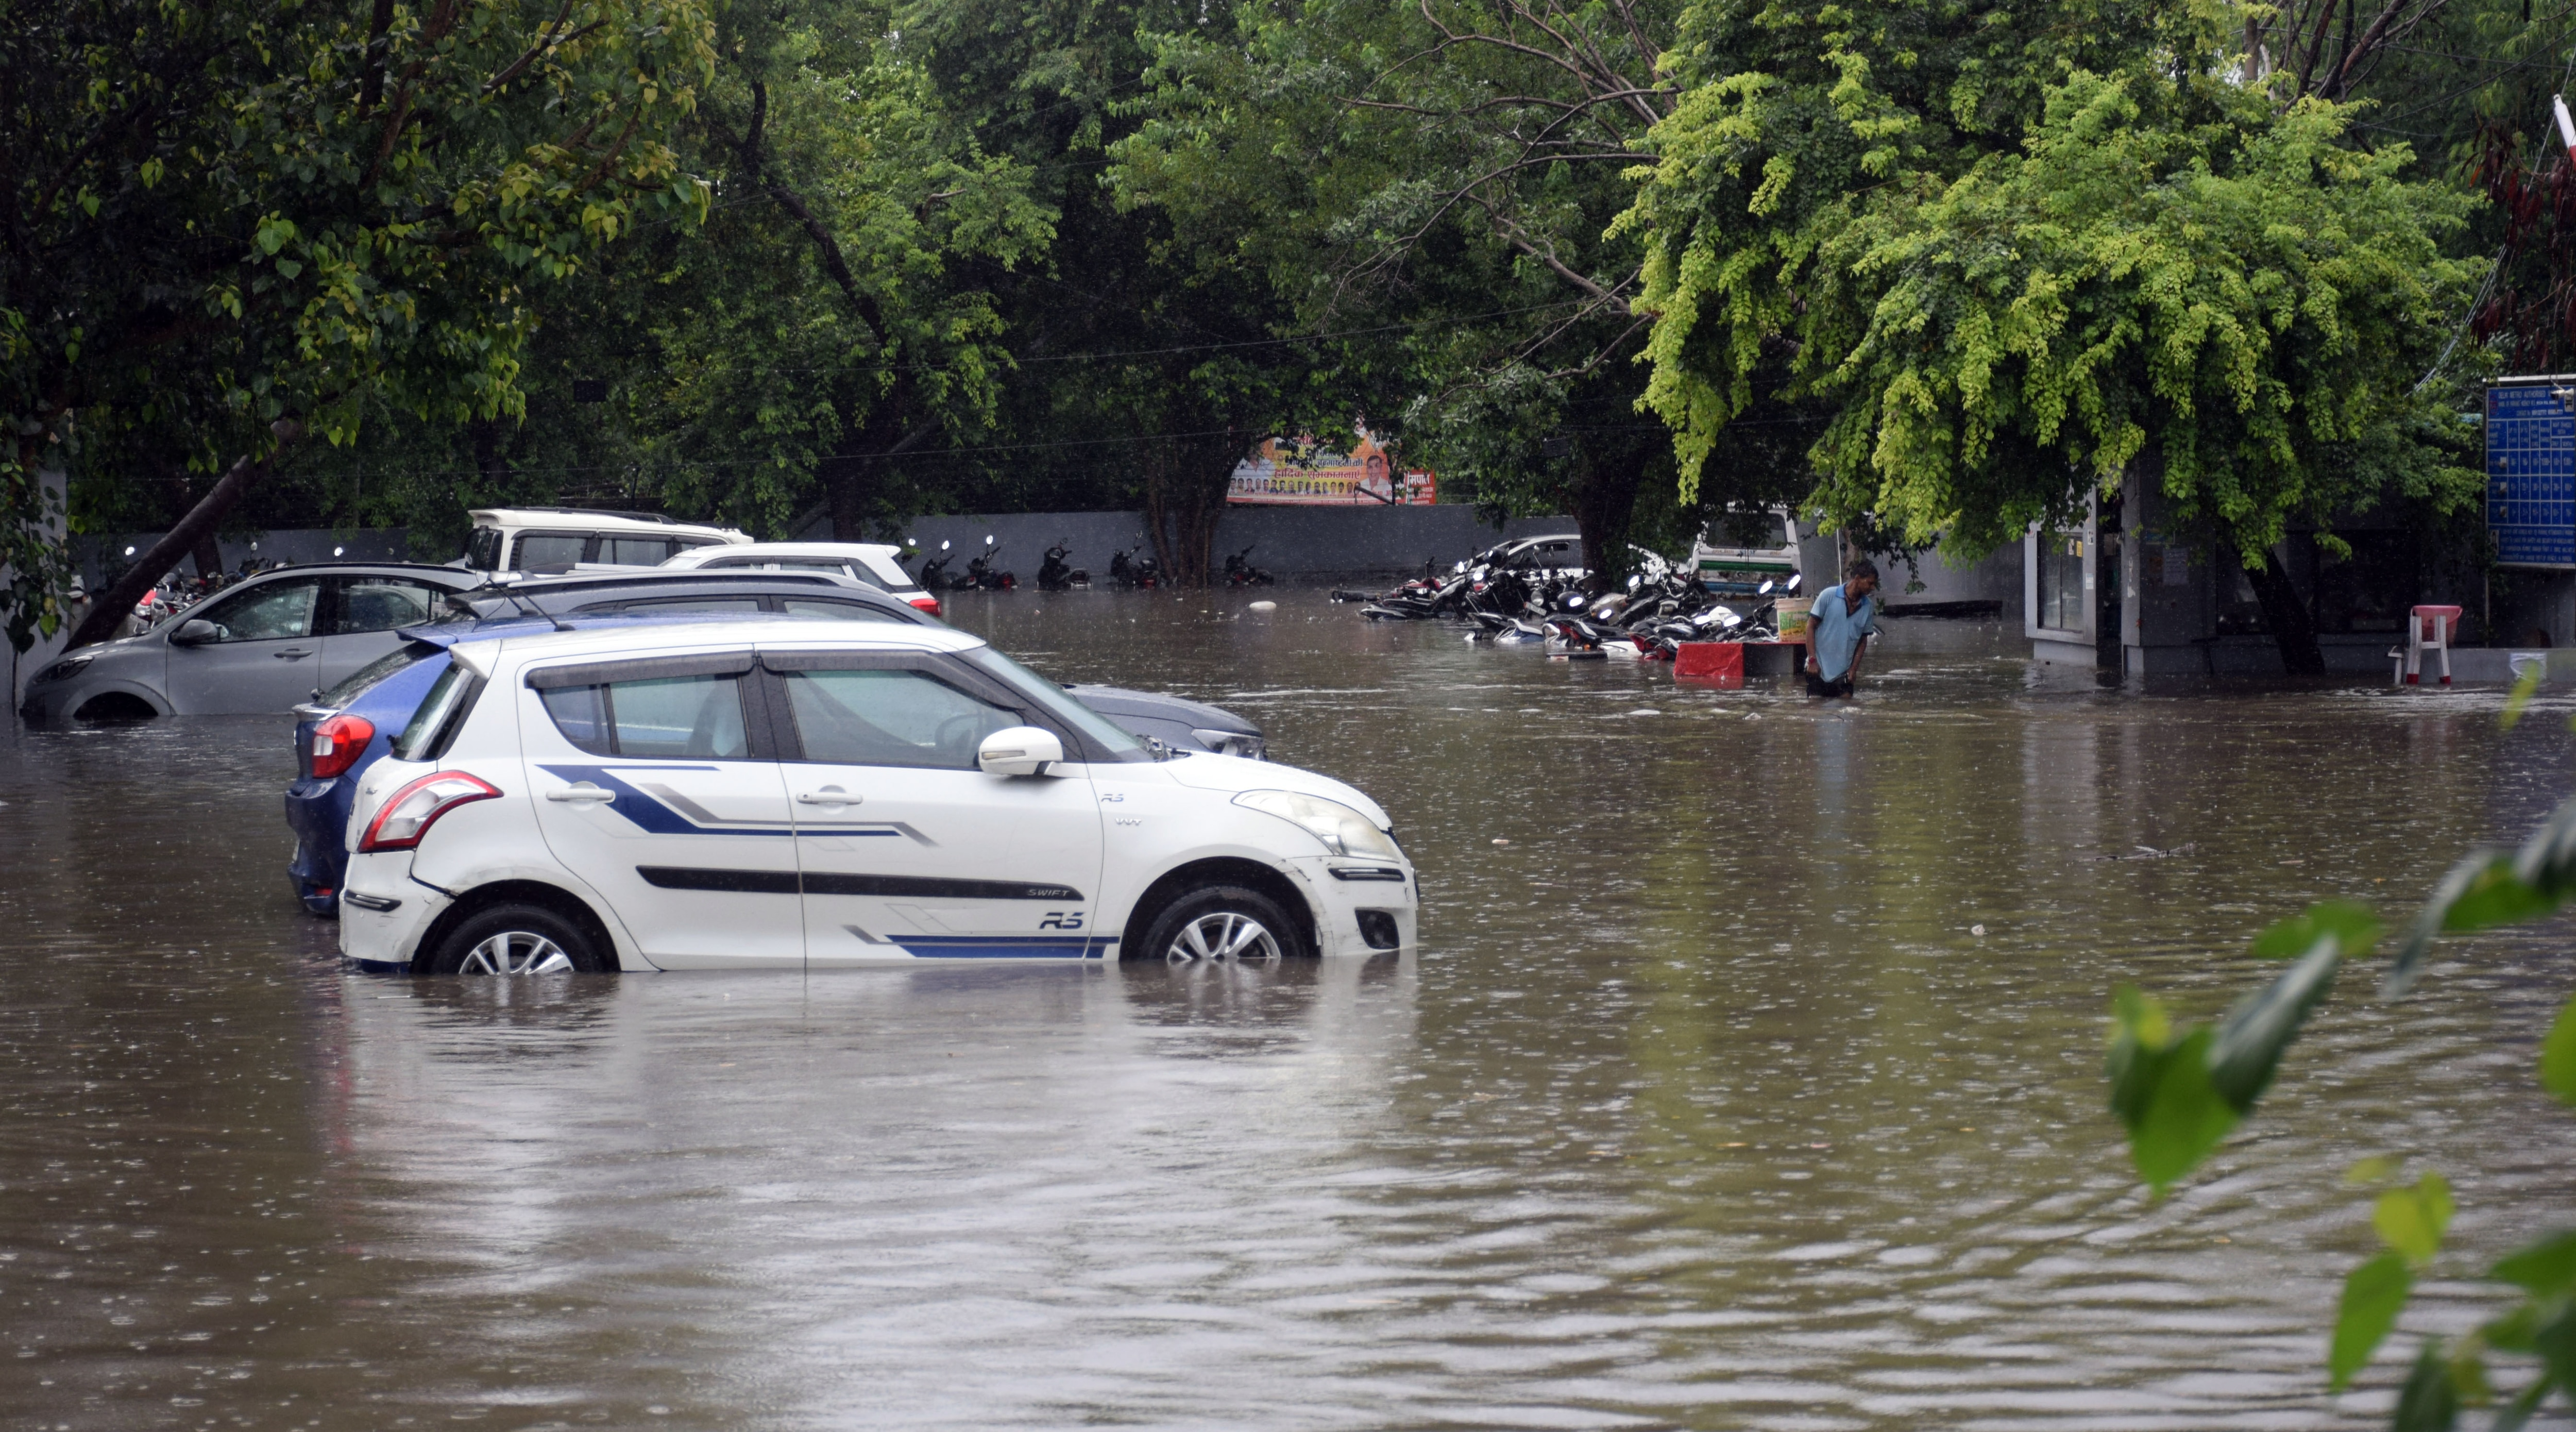 Many vehicle got stuck in water-logged stretches after persistent rain lashed Delhi. This photo is from near AIIMS hospital. (Sanjeev Verma/HT PHOTO)